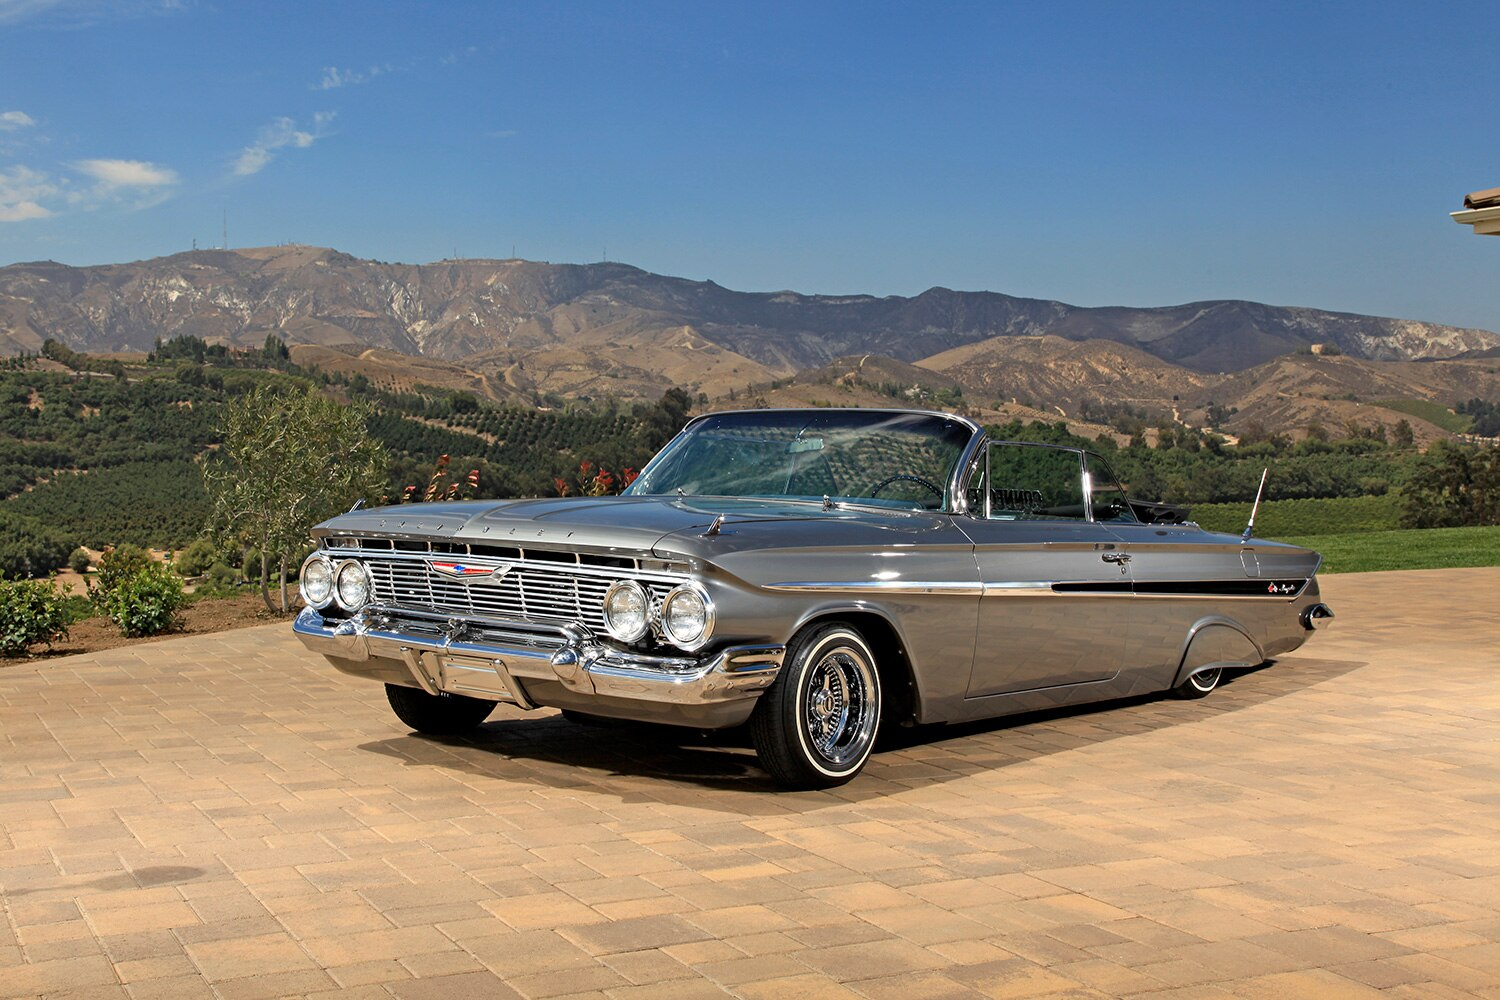 Used 1964 Chevrolet Impala For Sale  CarGurus